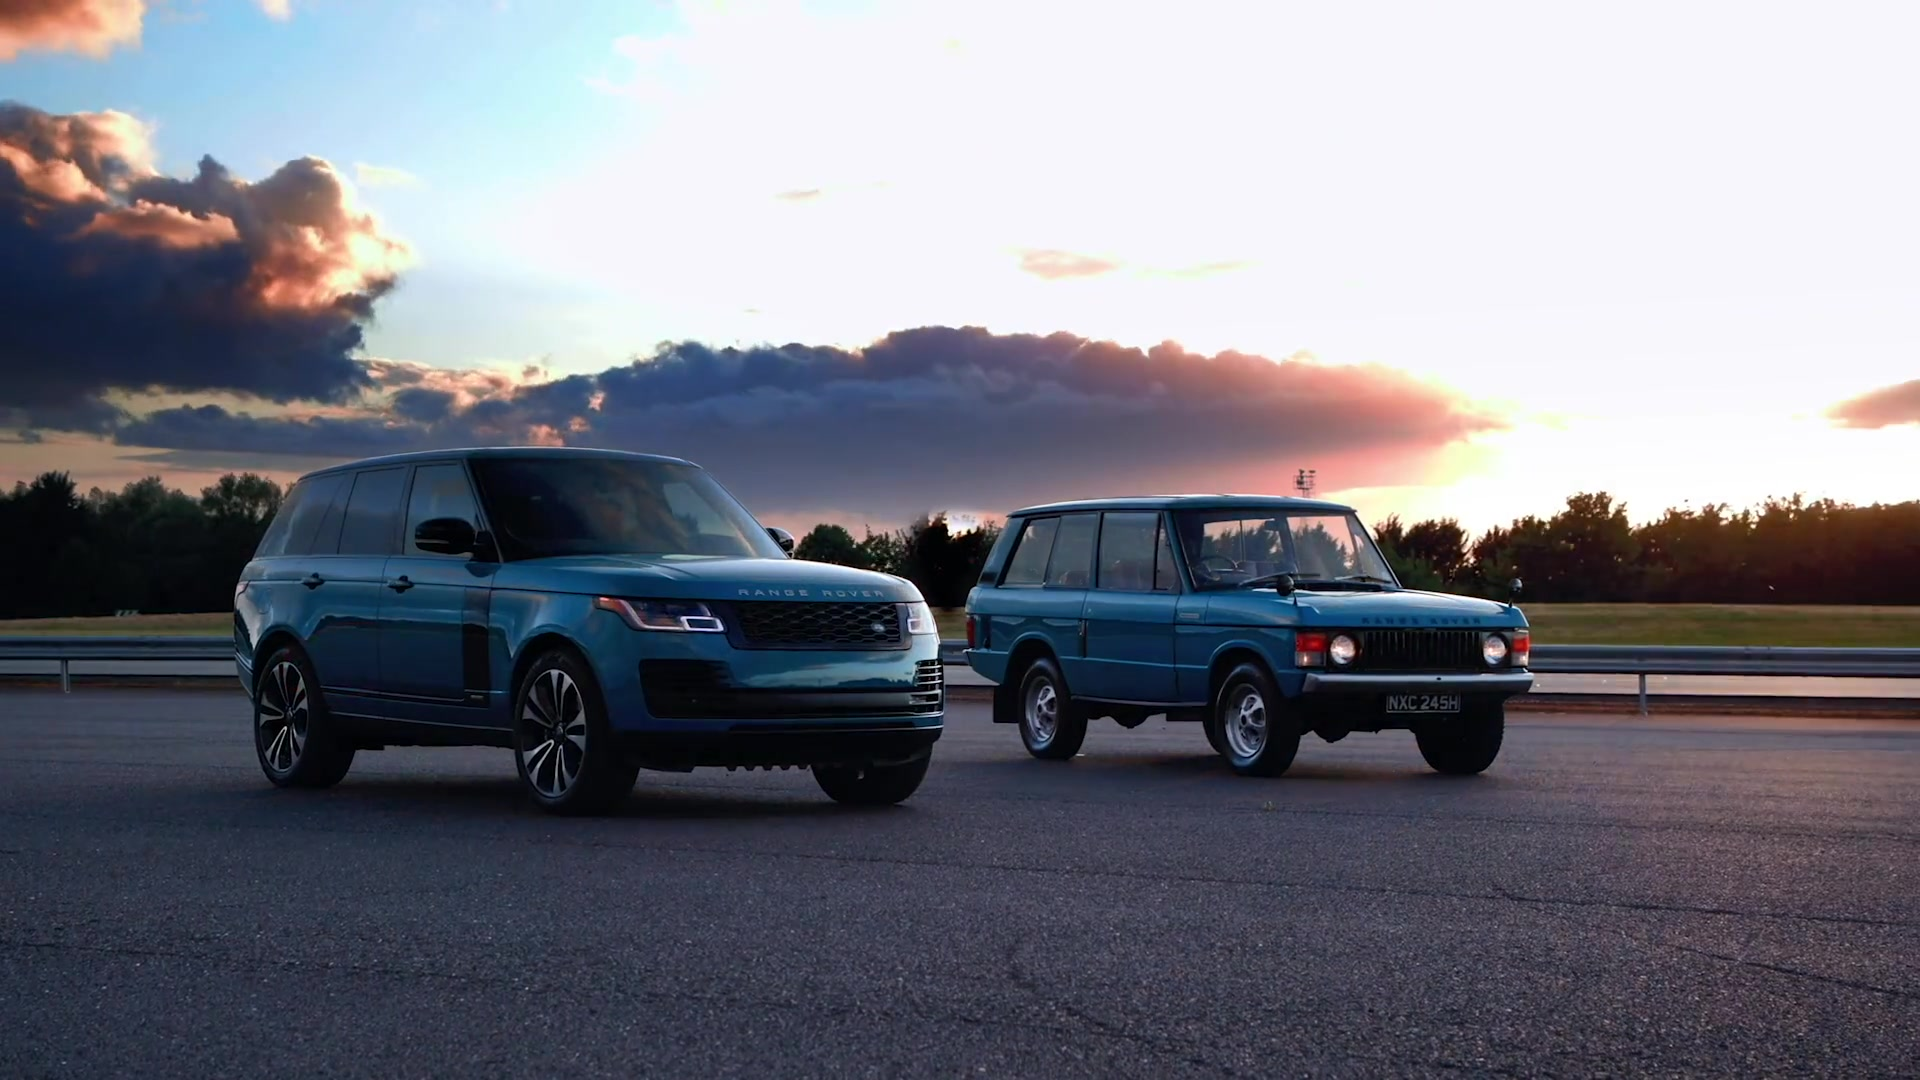 Range Rover Fifty Limited Edition and classic Range Rover Design